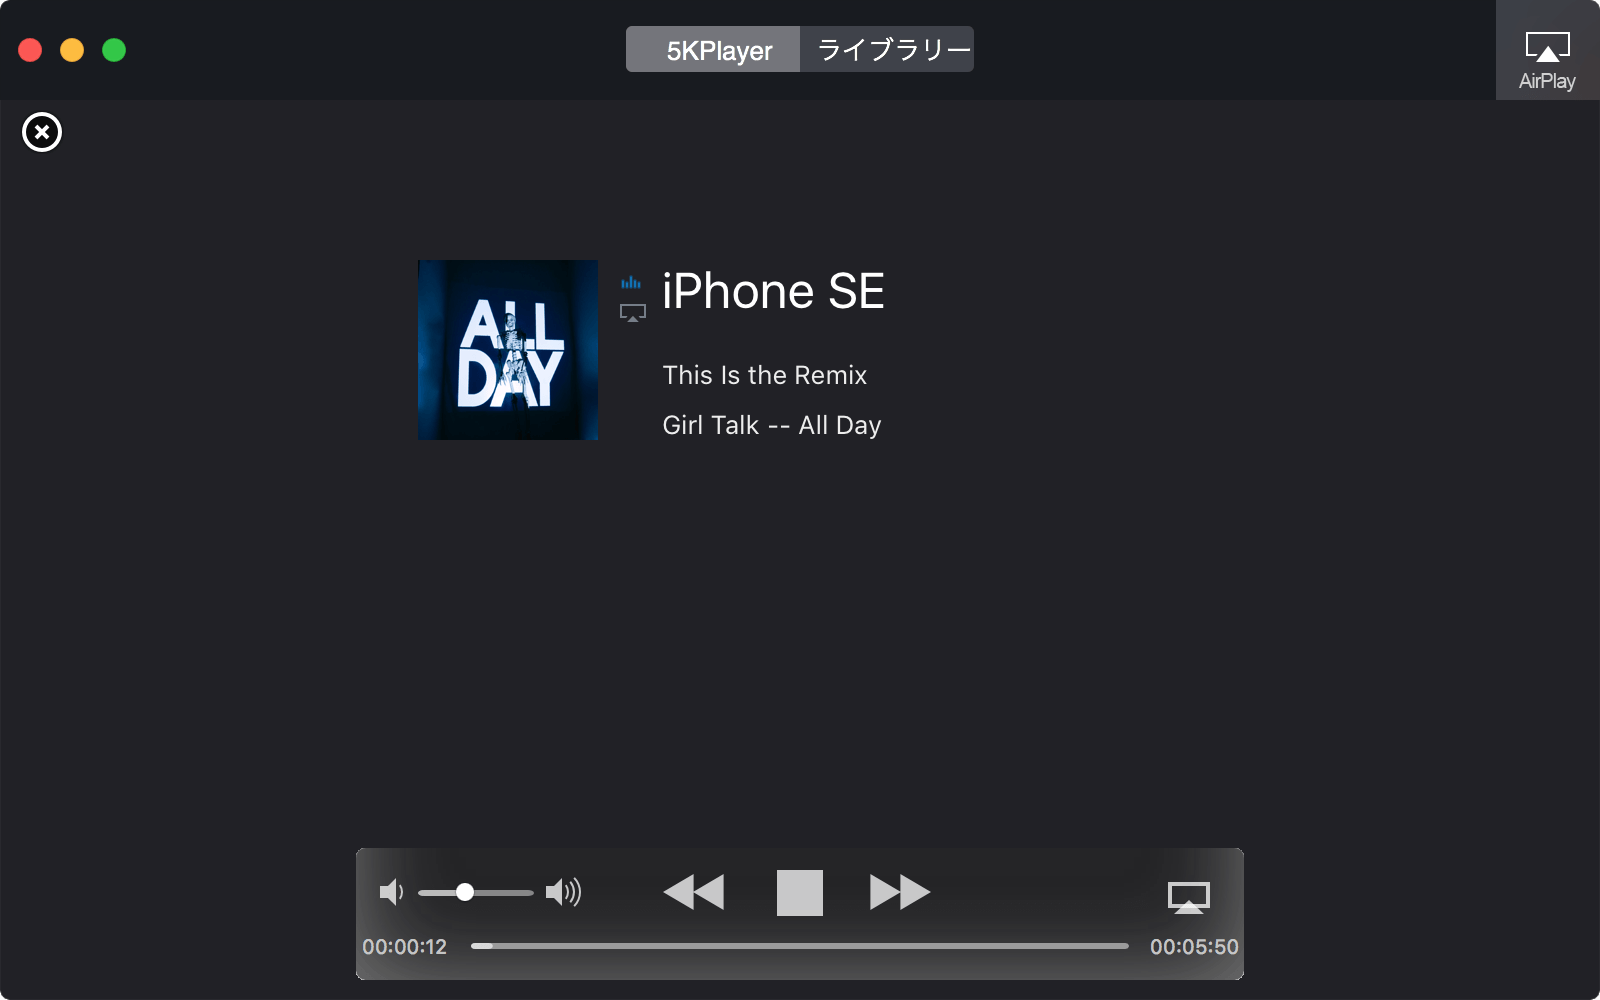 012_20160806_5kplayer-airplay